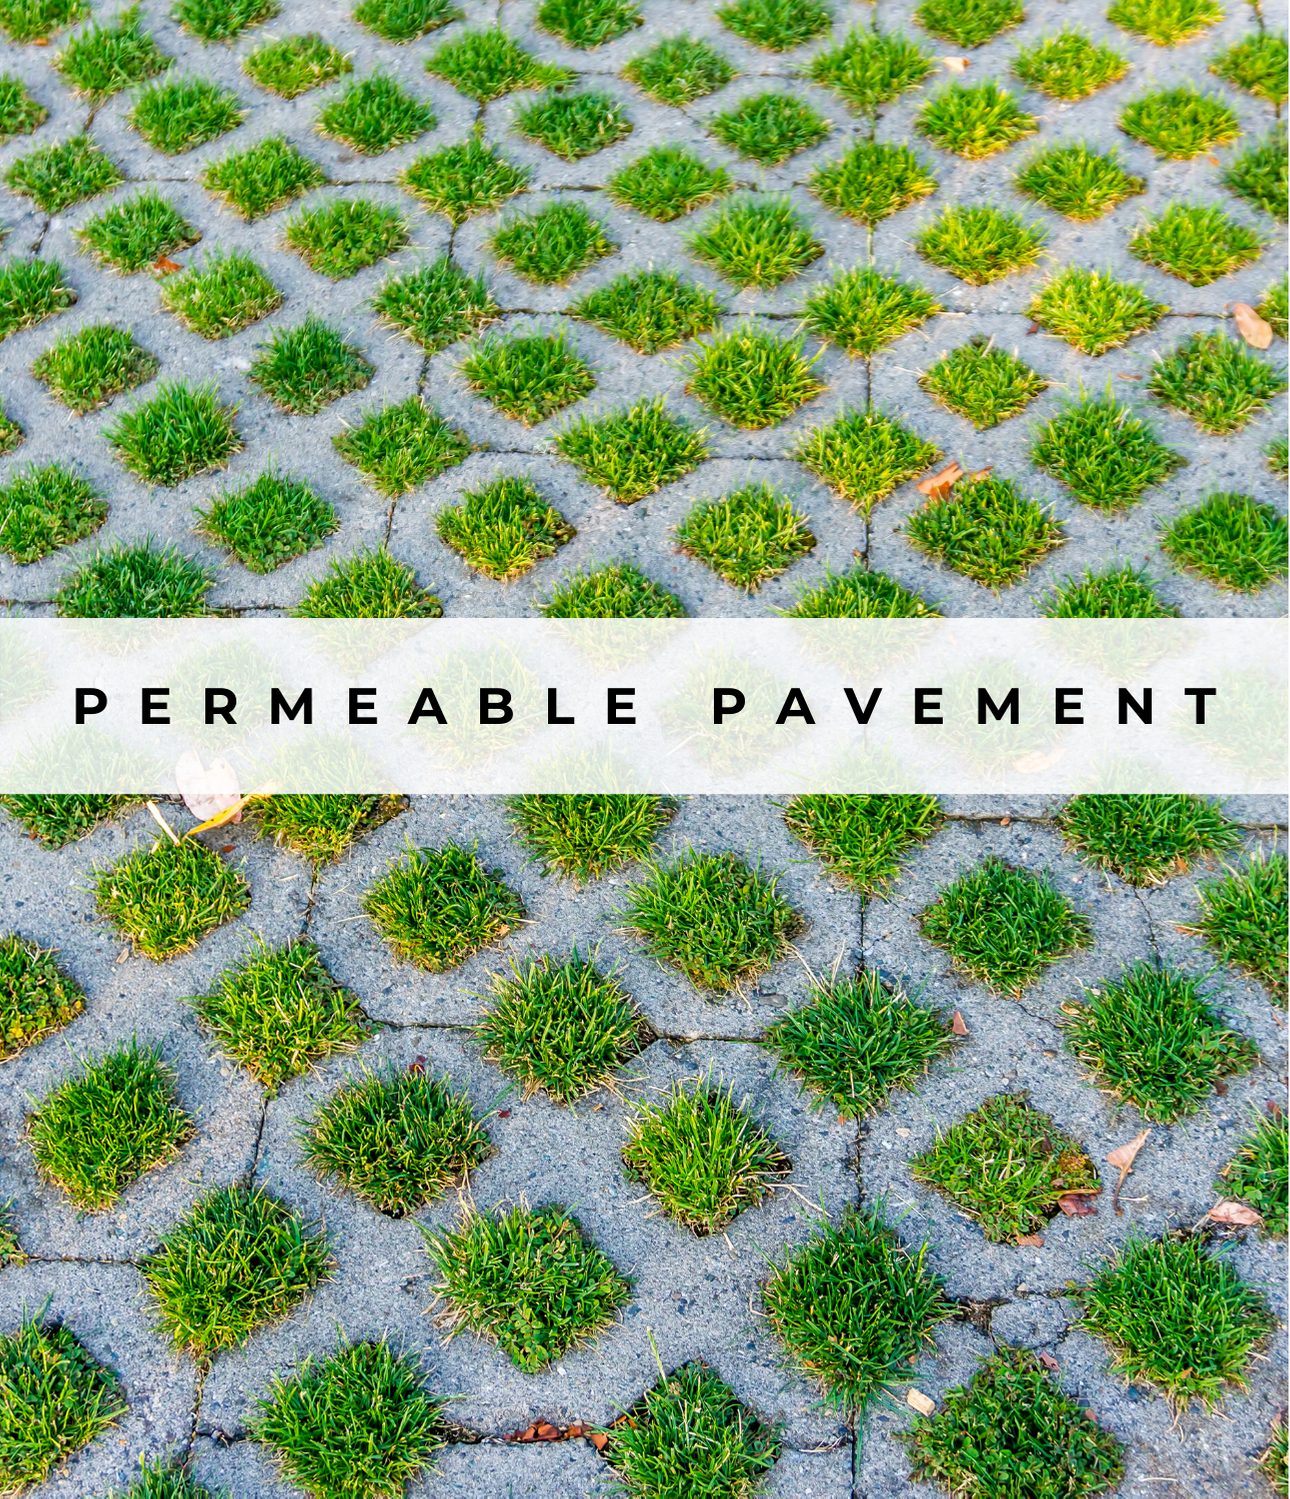 Image of Permeable Pavement